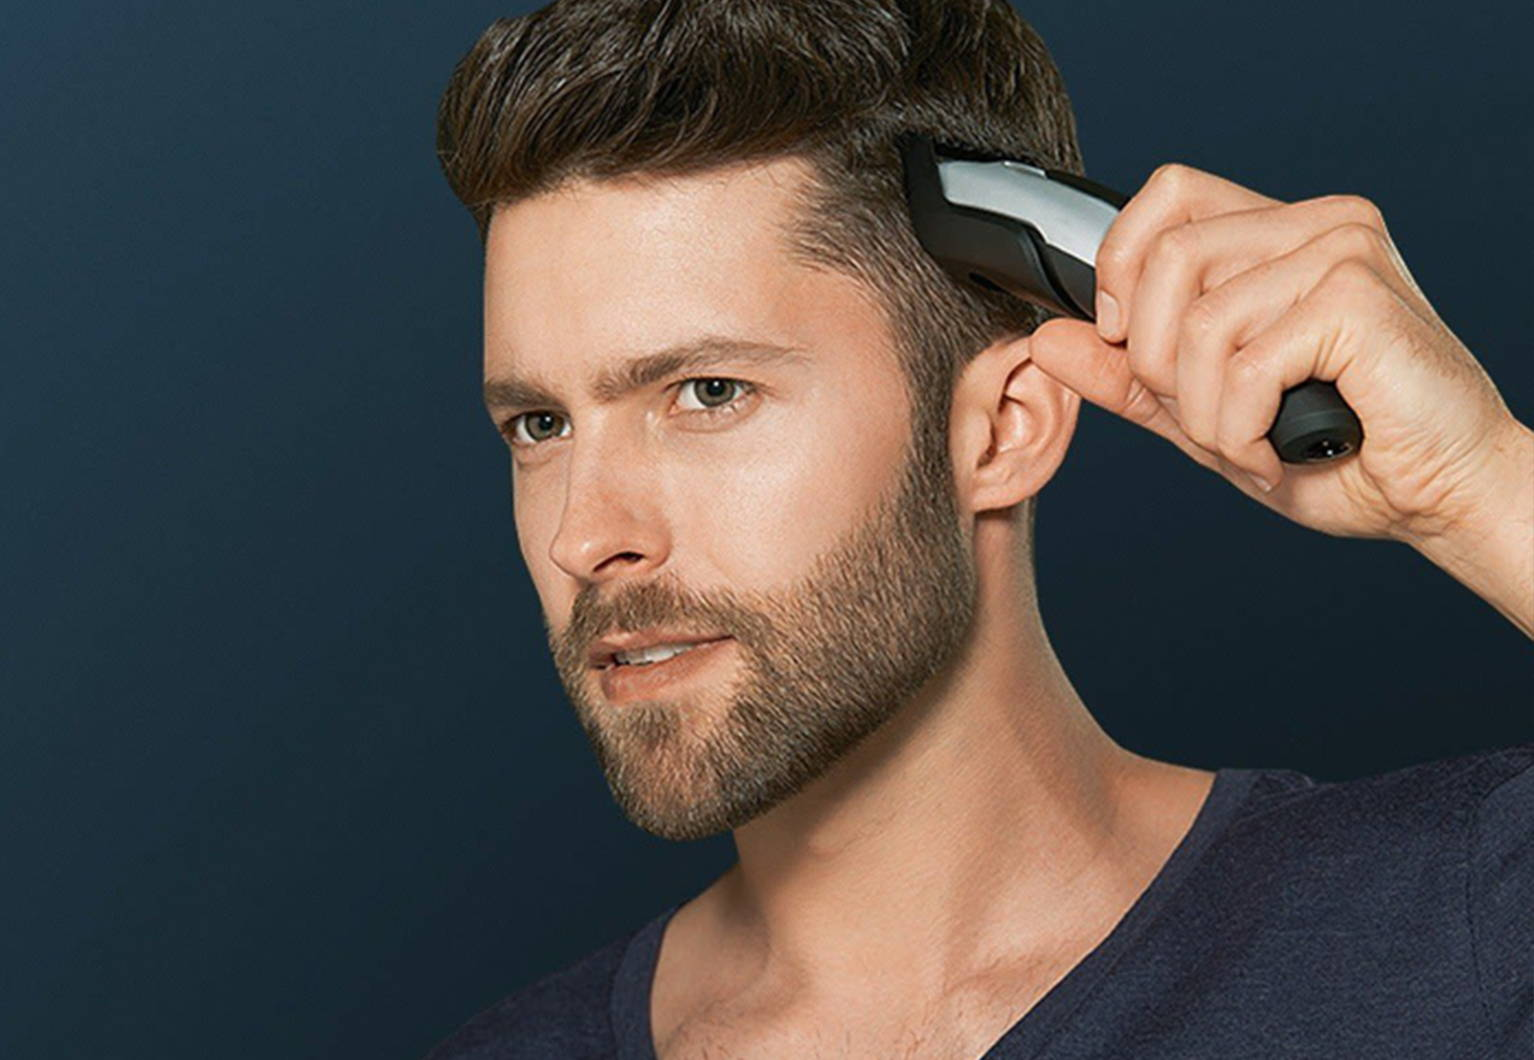 To Cut Trim And Shave Your Hair At